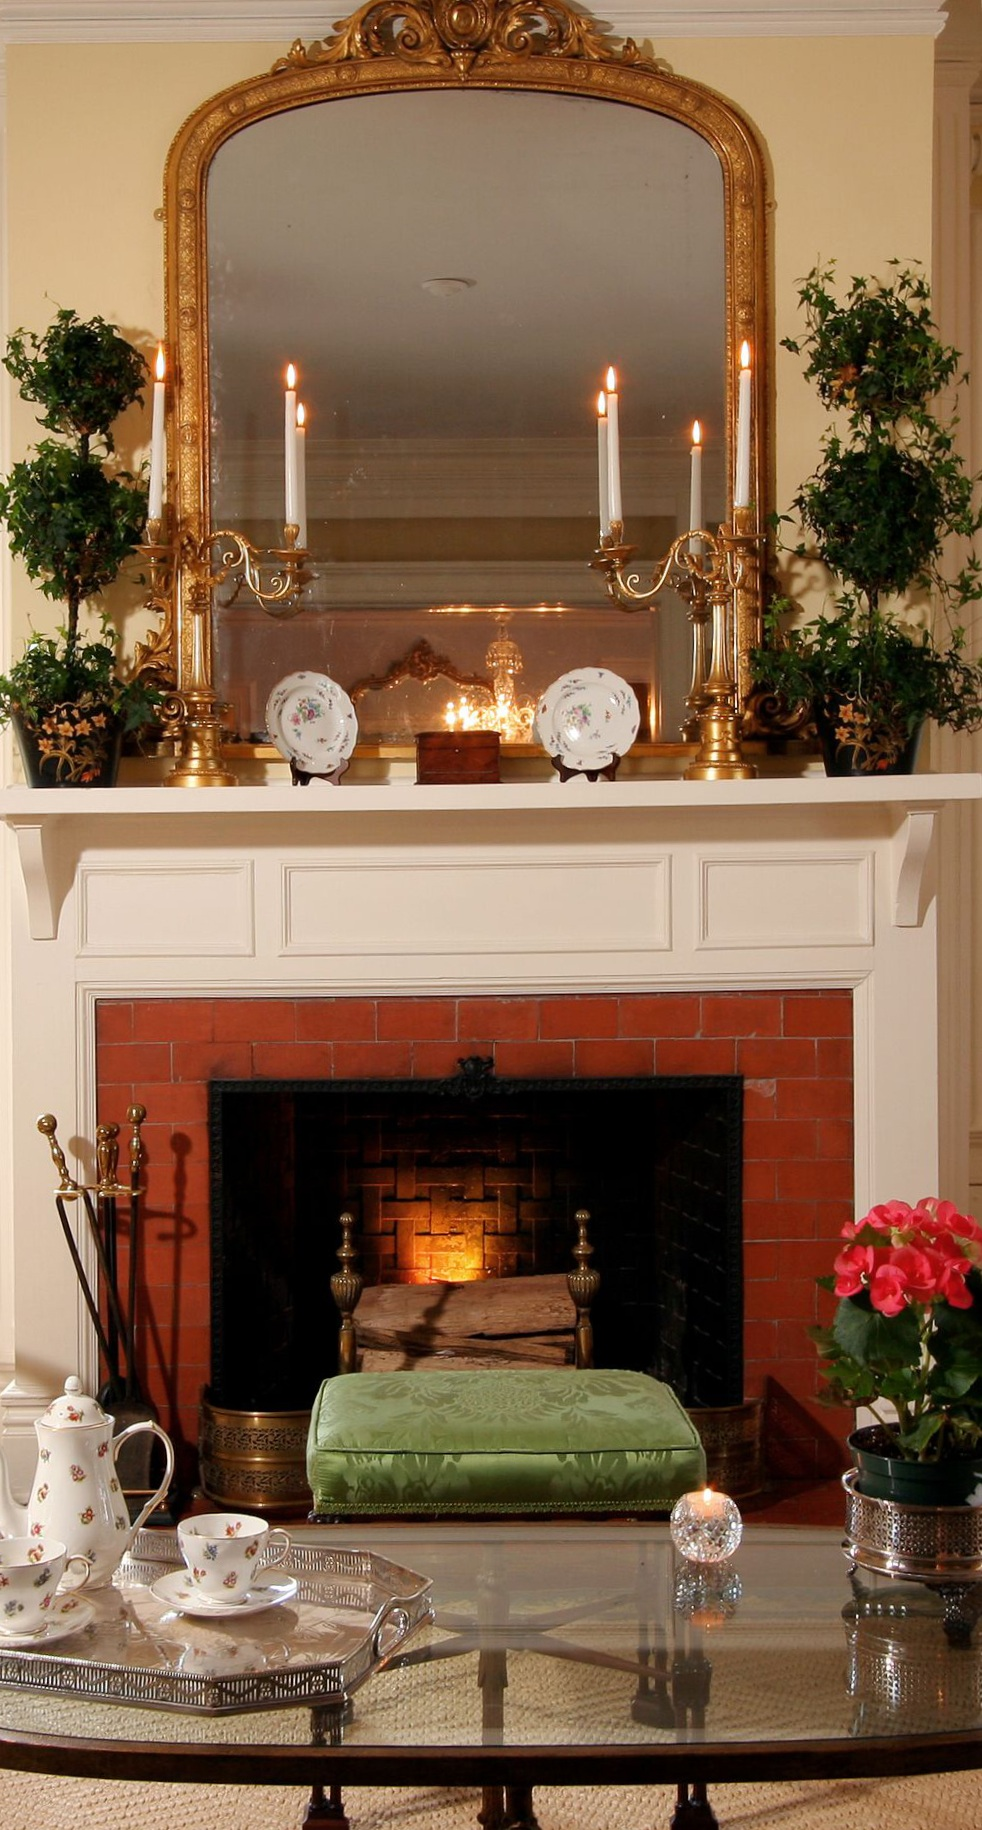 fireplace-cropshot.jpg